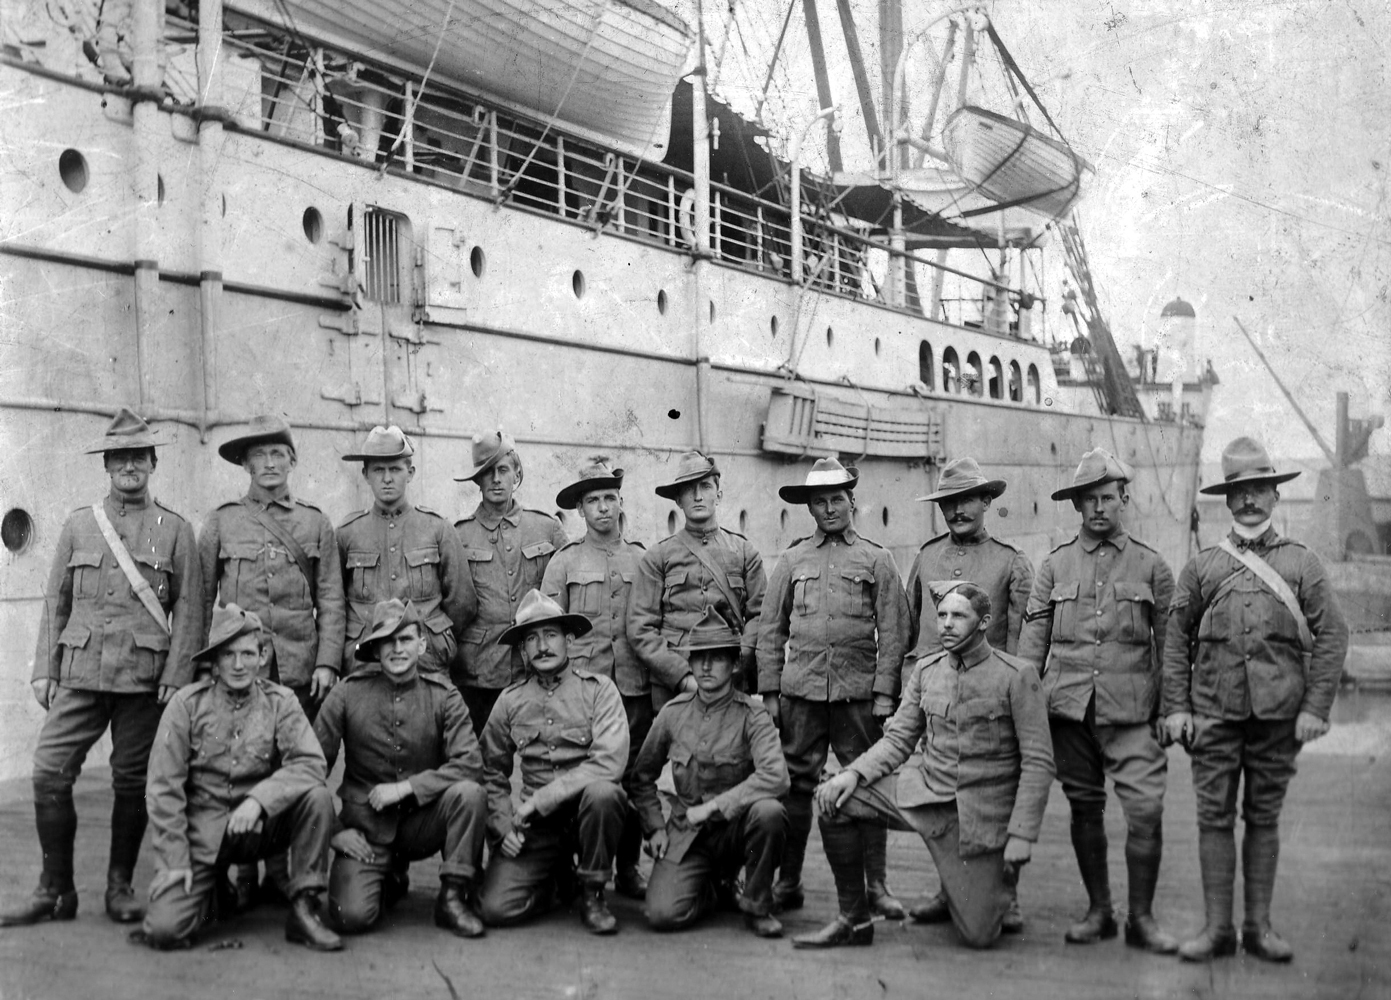 Squad Of ANZAC Soldiers On Pier c.1916